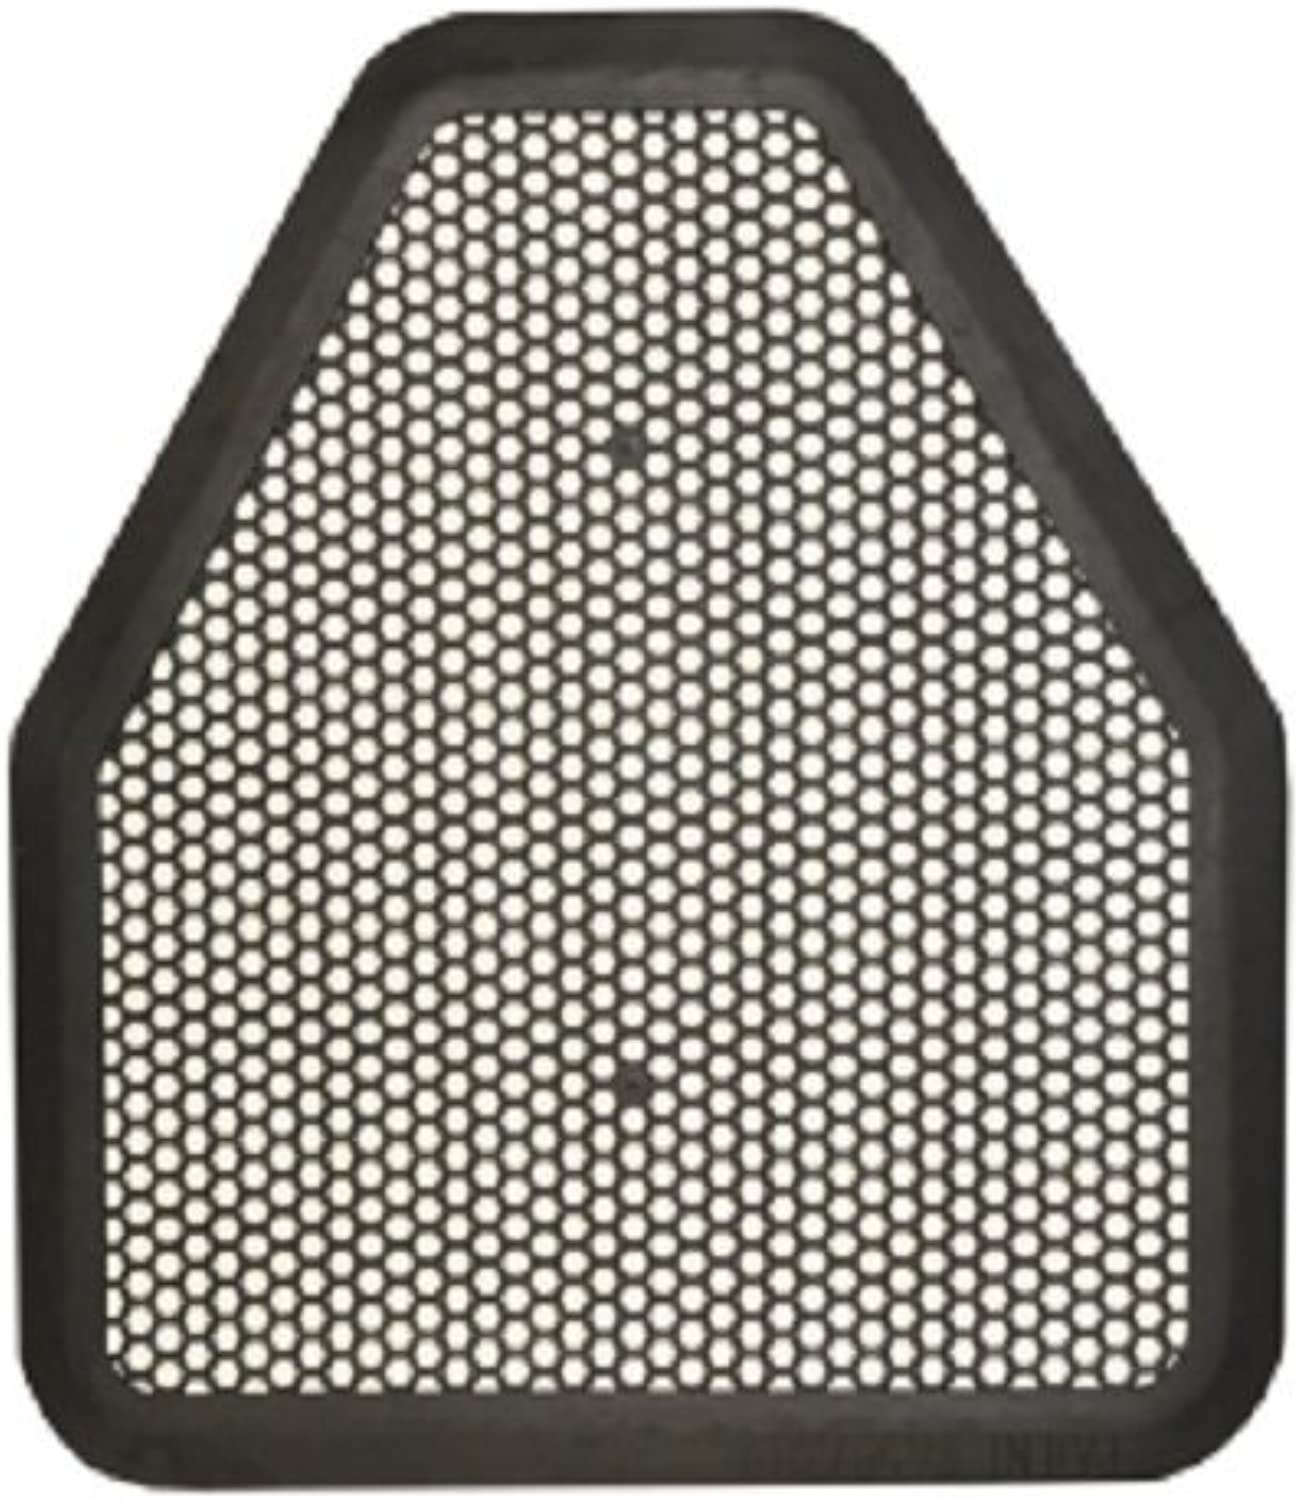 Tolco 220206 Eco-Choice Urinal Floor Mat, 18.5  Height, 0.25  Width, Black (Pack of 6)